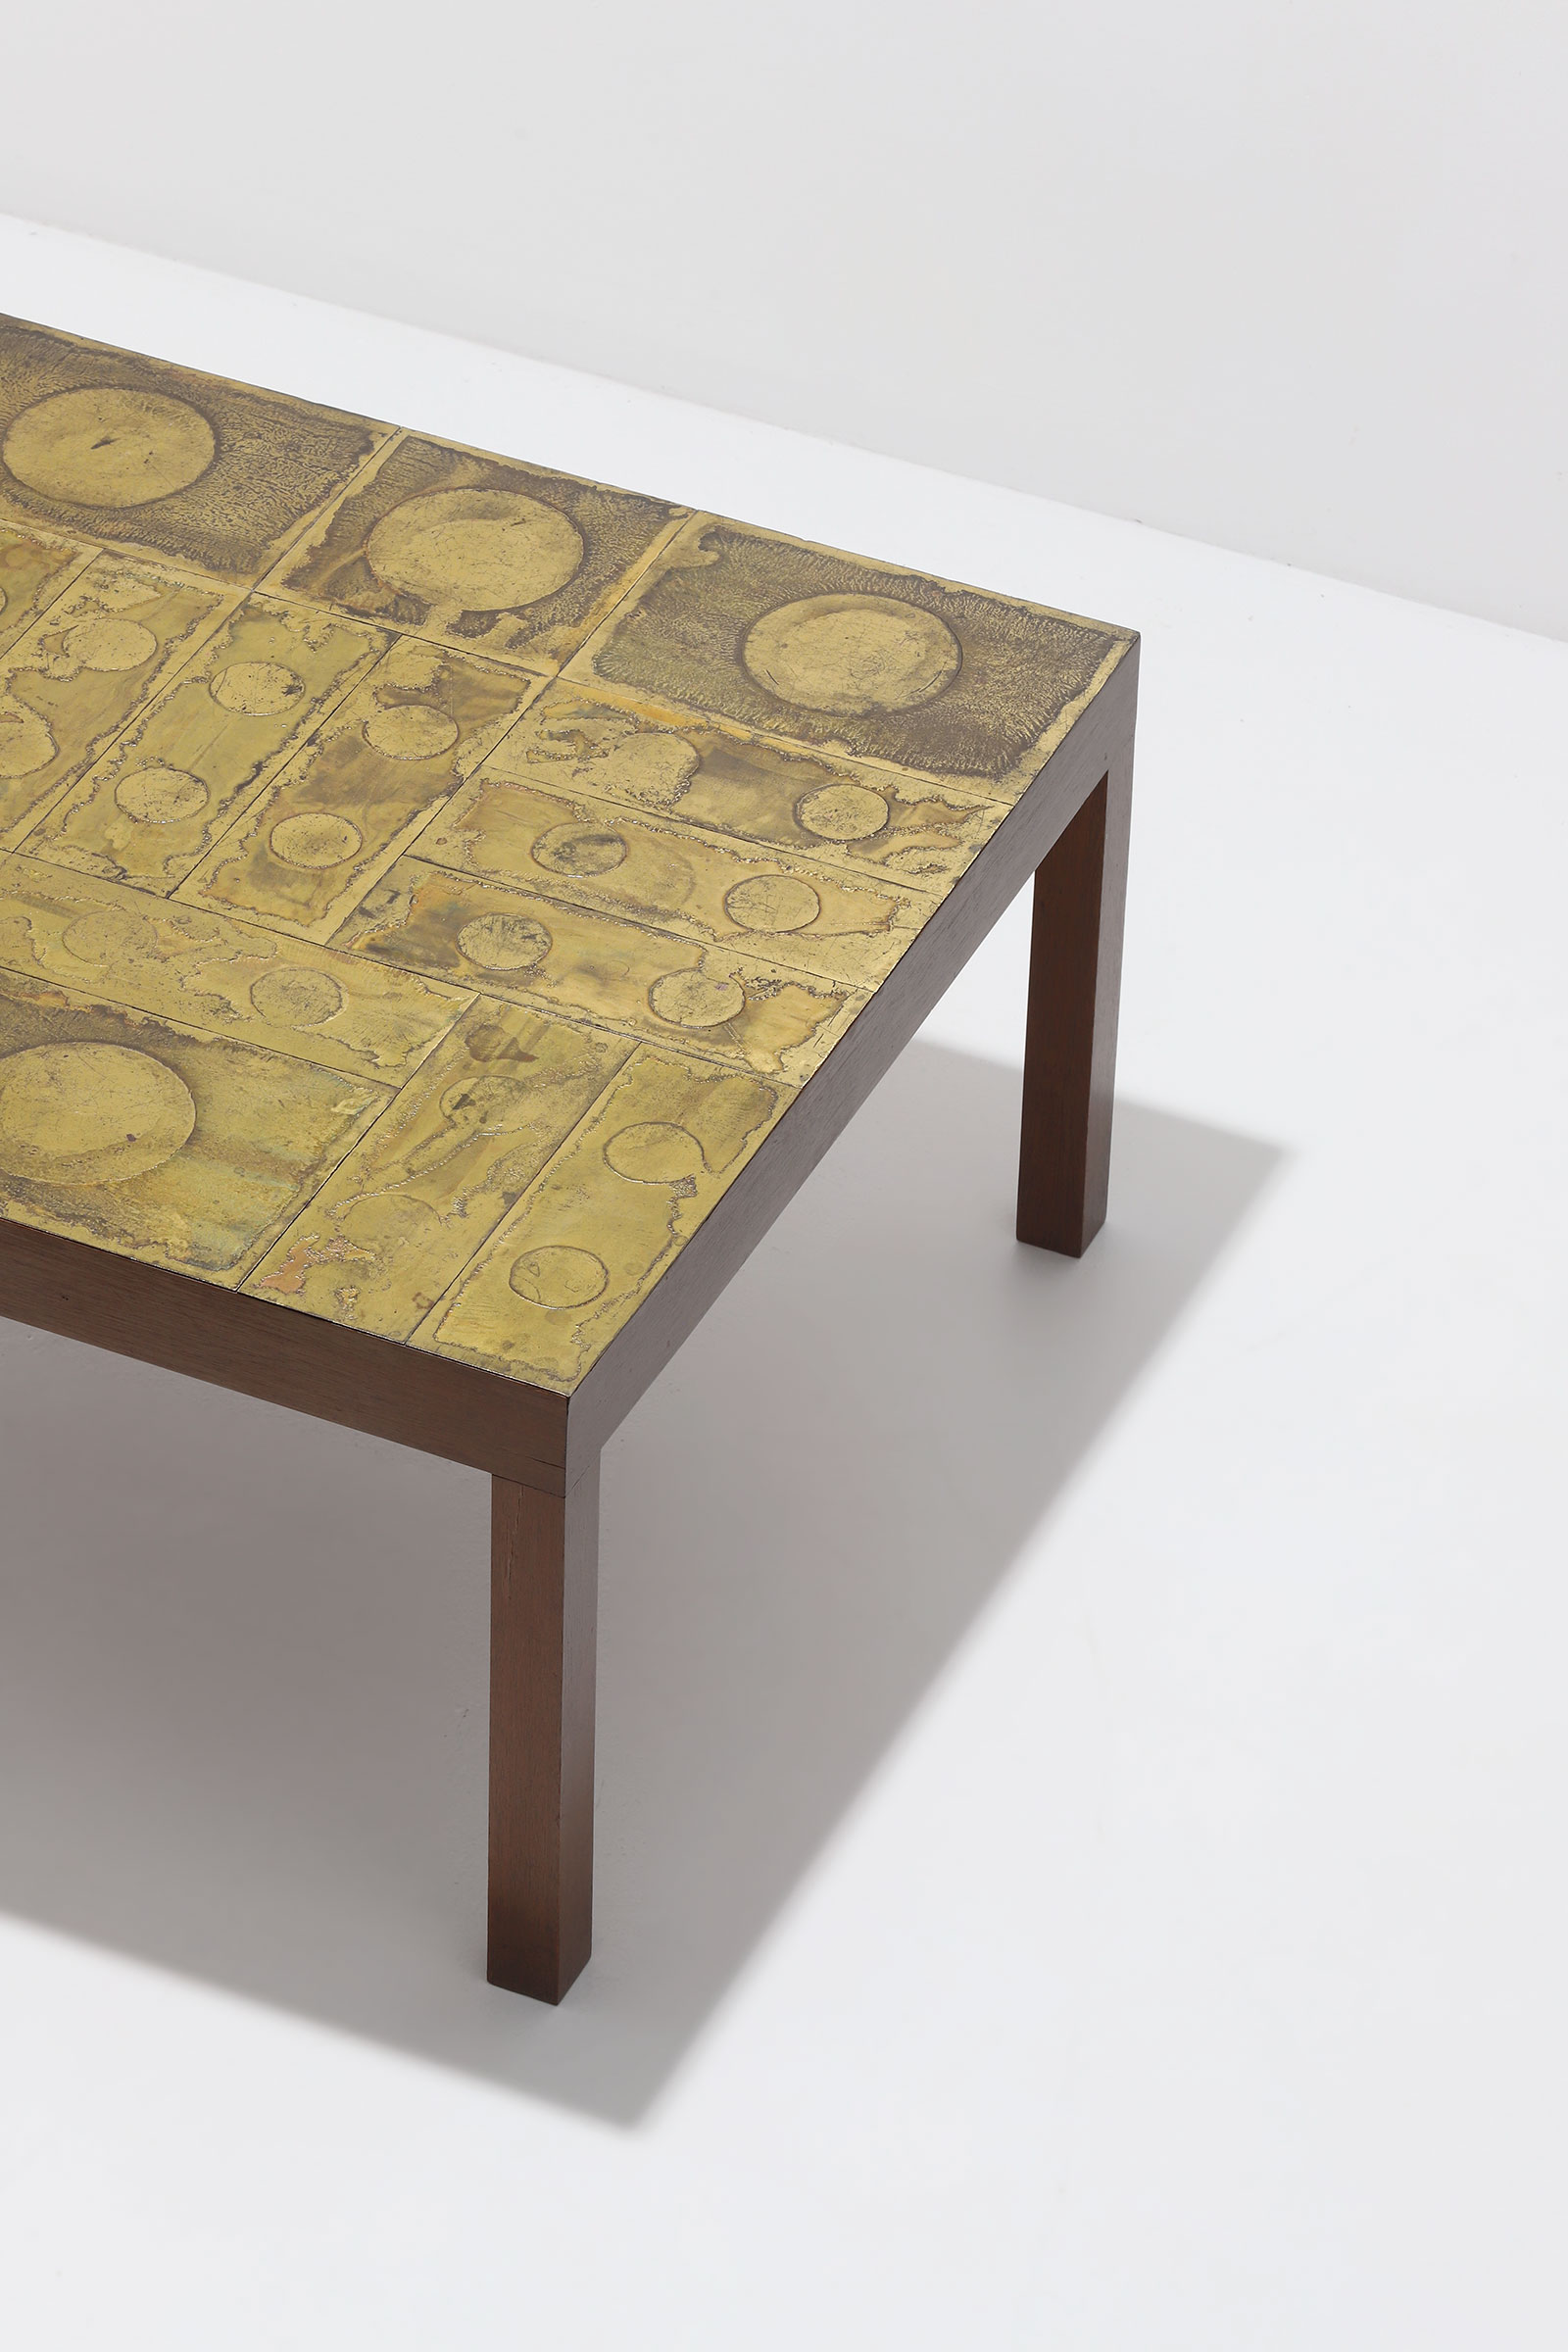 Willy Daro Brass etched Coffee Table 1970s